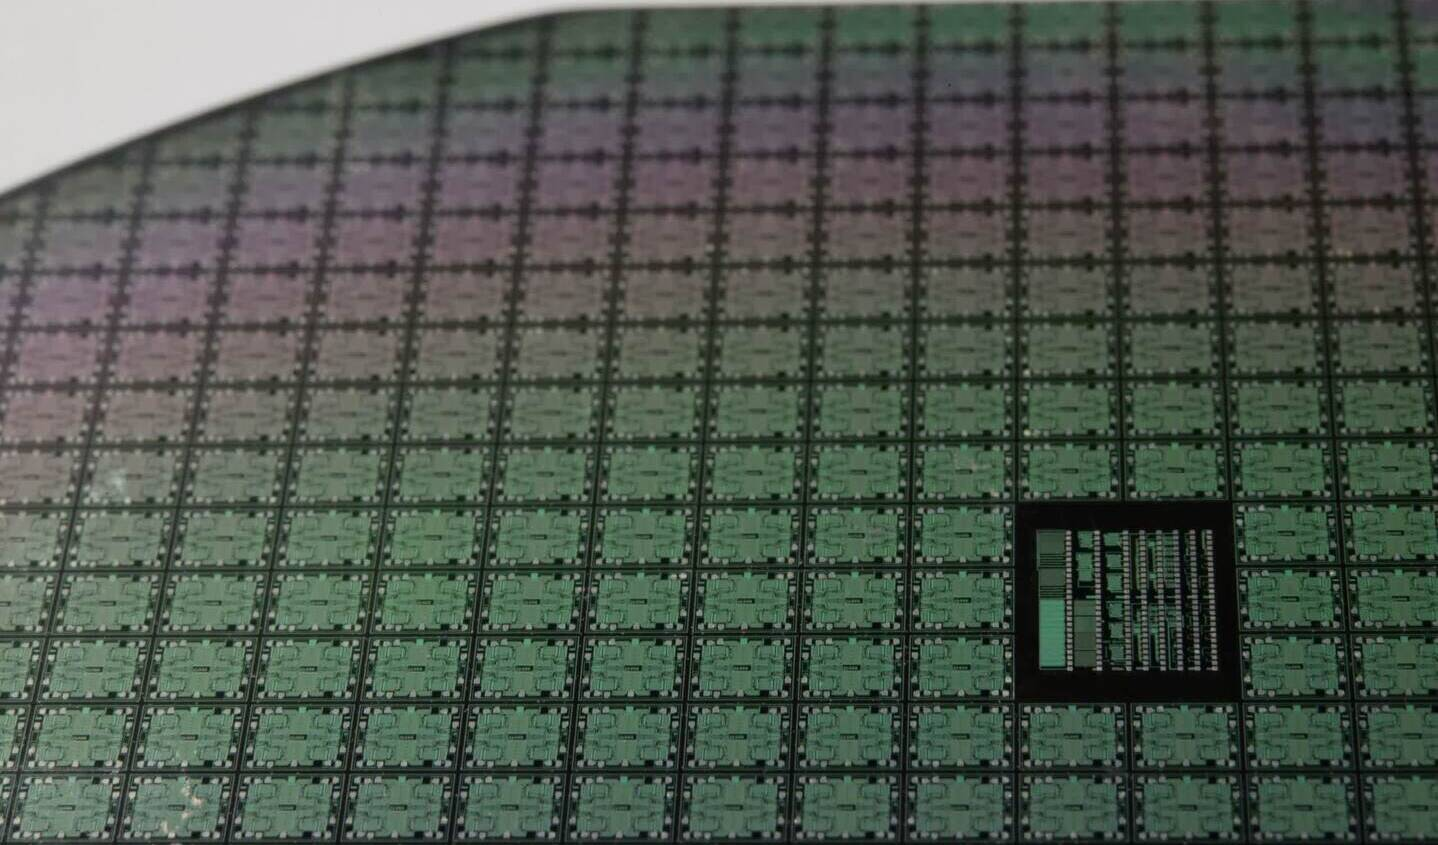 TSMC Employs AMD EPYC CPUs for Mission-Critical Manufacturing